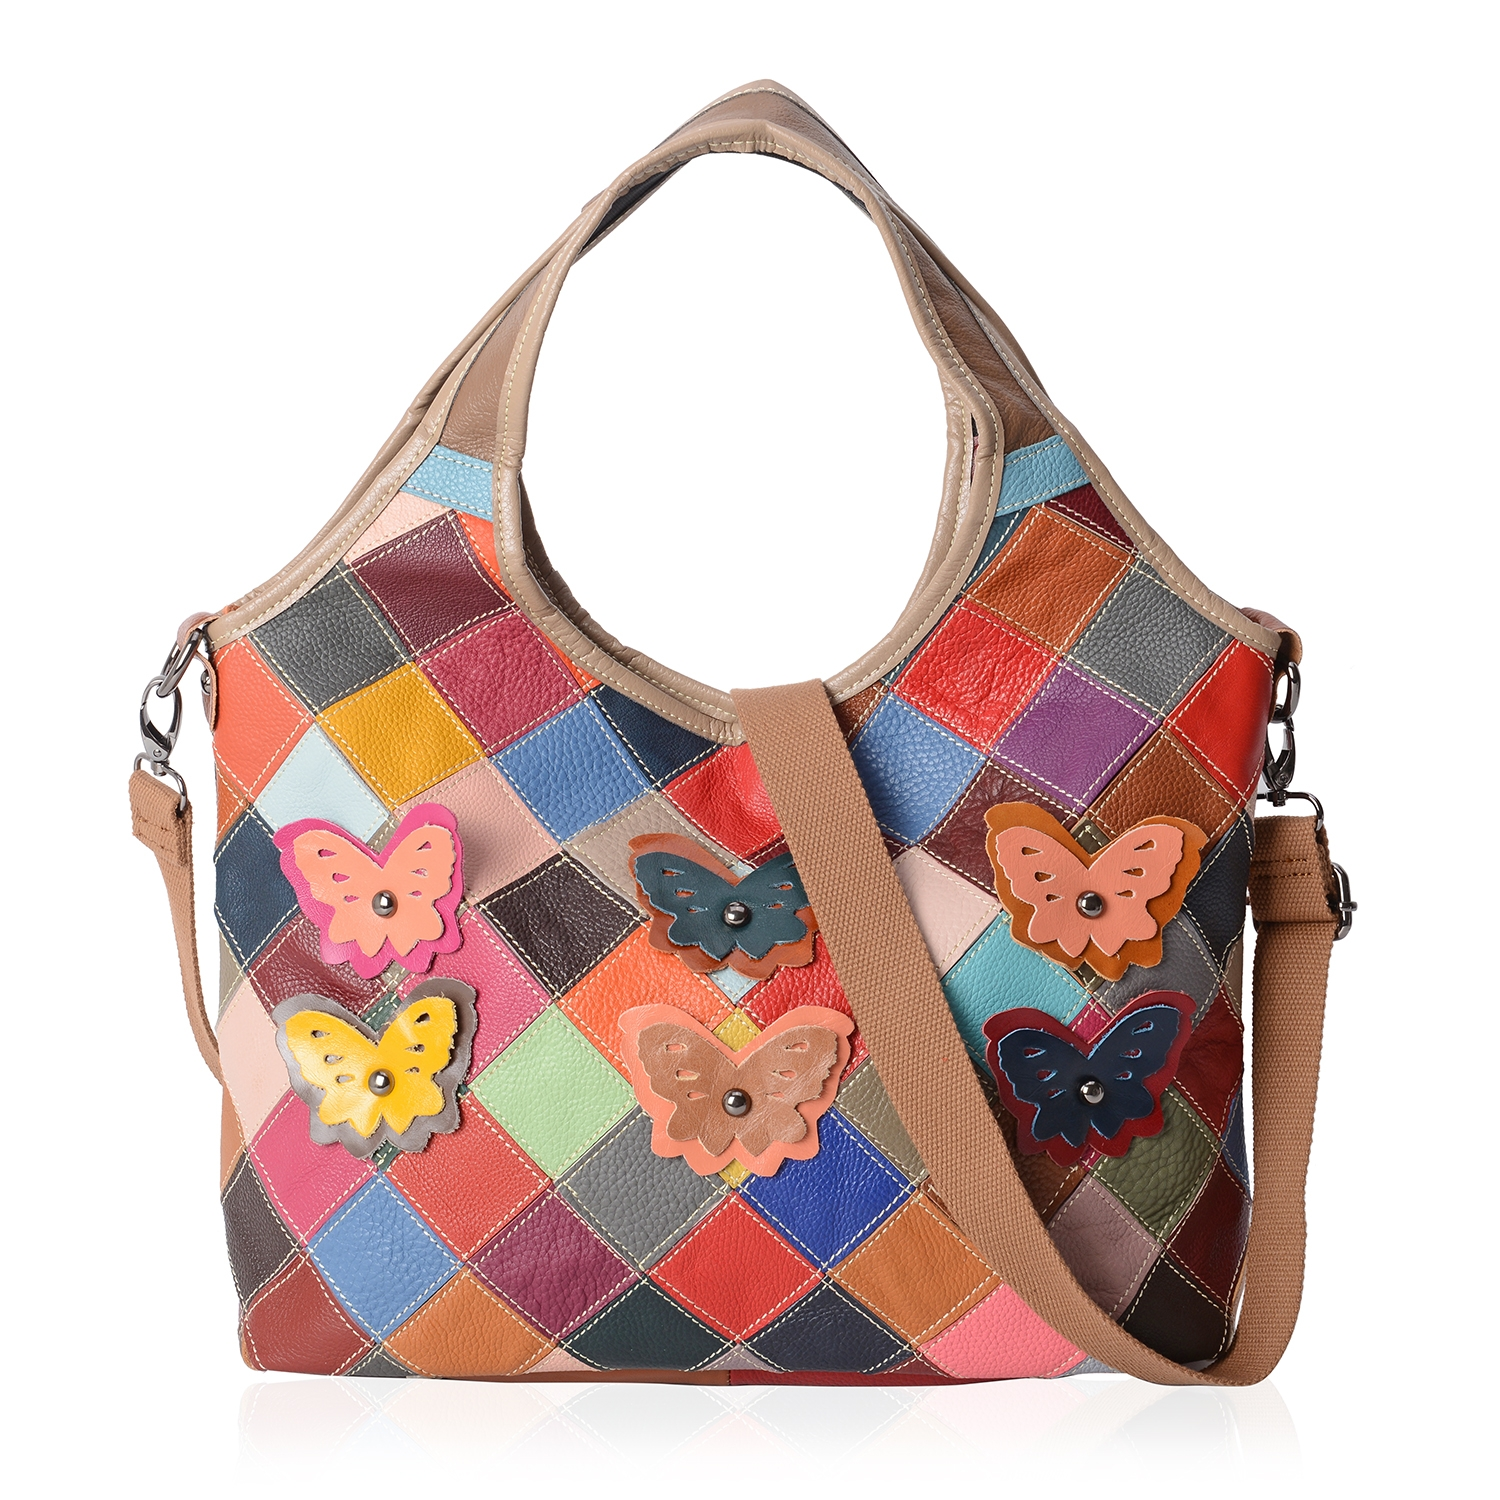 Chaos By Elsie Multi Color Checker Pattern Genuine Leather Hobo Bag (16.5x5x11 in) with Removable Shoulder Strap (50 in)